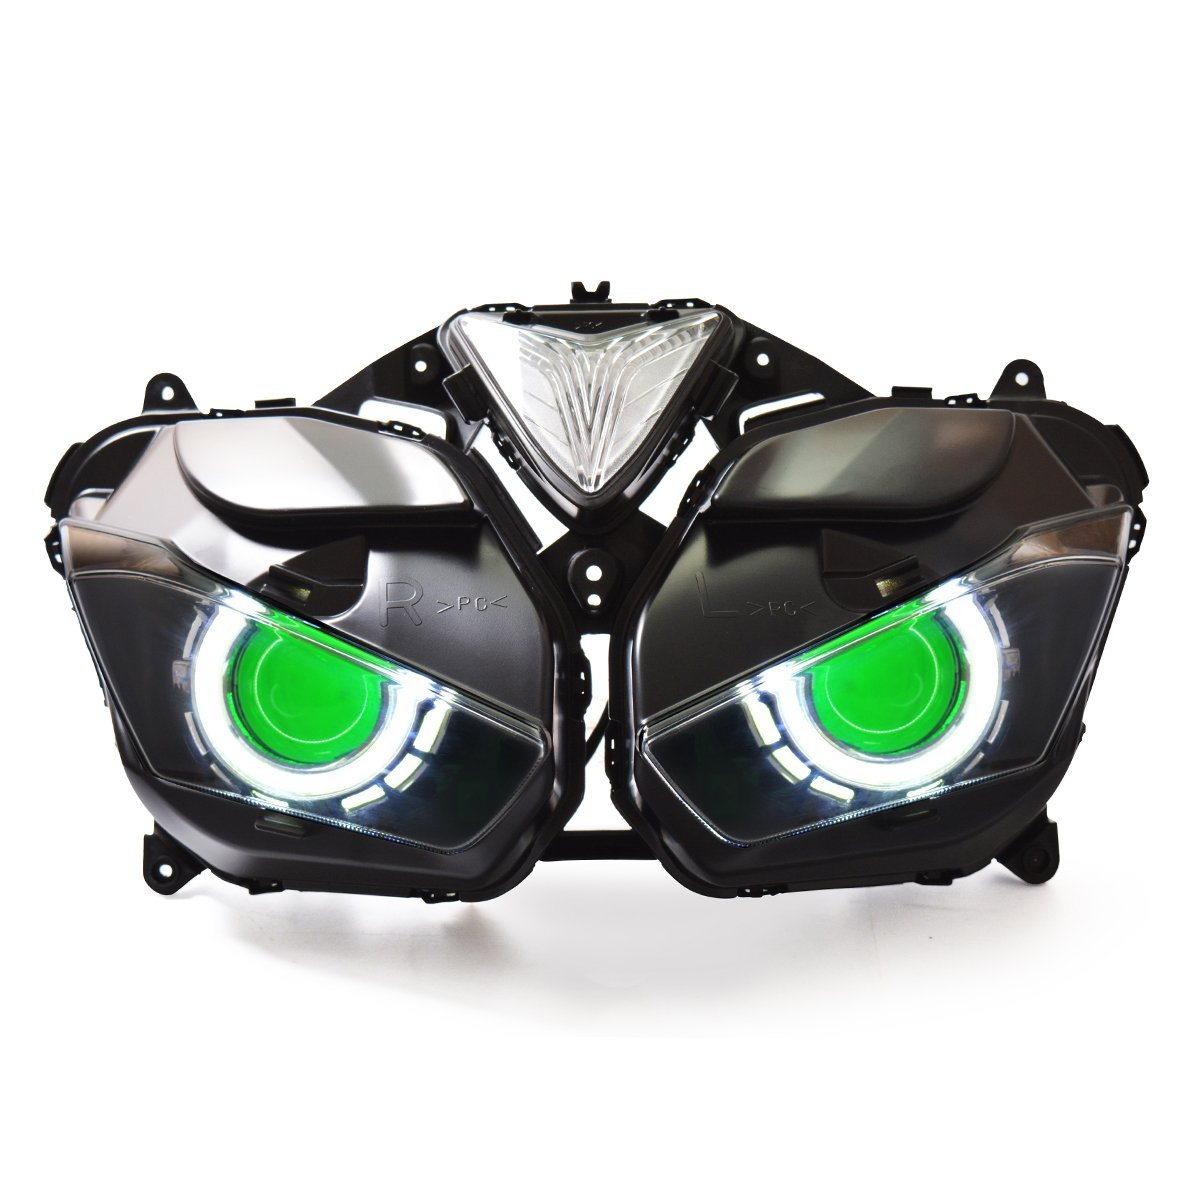 KT Fit for 2015 2016 2017 Yamaha R3 LED Angel Eye Headlight Assembly Green Demon Eye